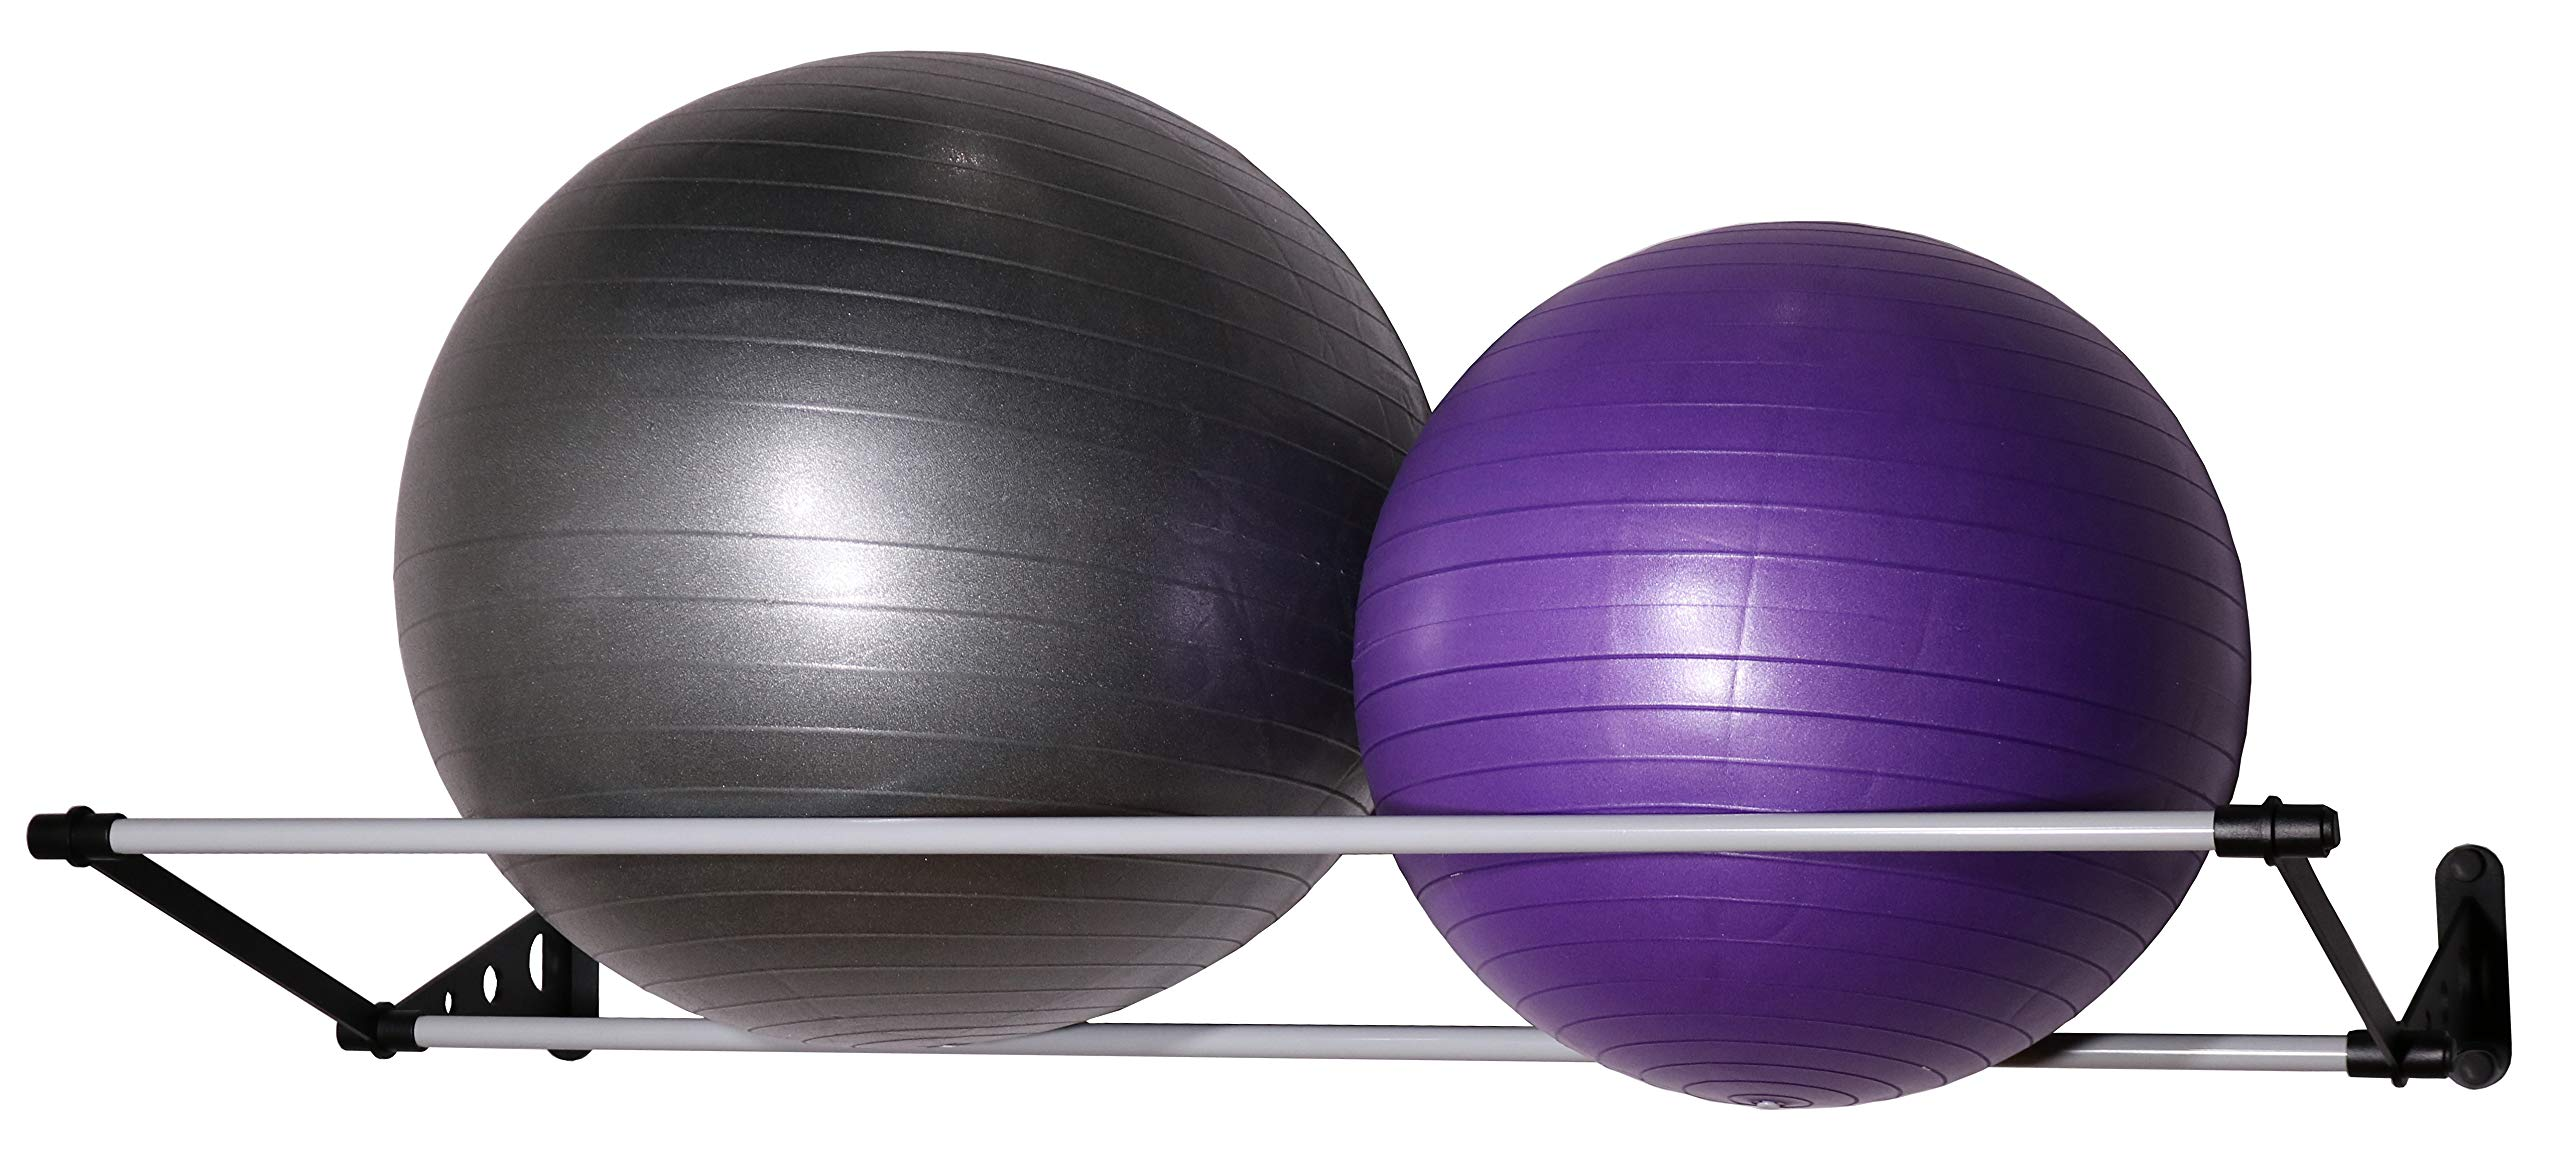 Vita Vibe Wall Storage Rack for Exercise/Yoga/Stability Balls - for Storing Ball Sizes 25cm to 95cm (10'' to 36'') (4 FT)